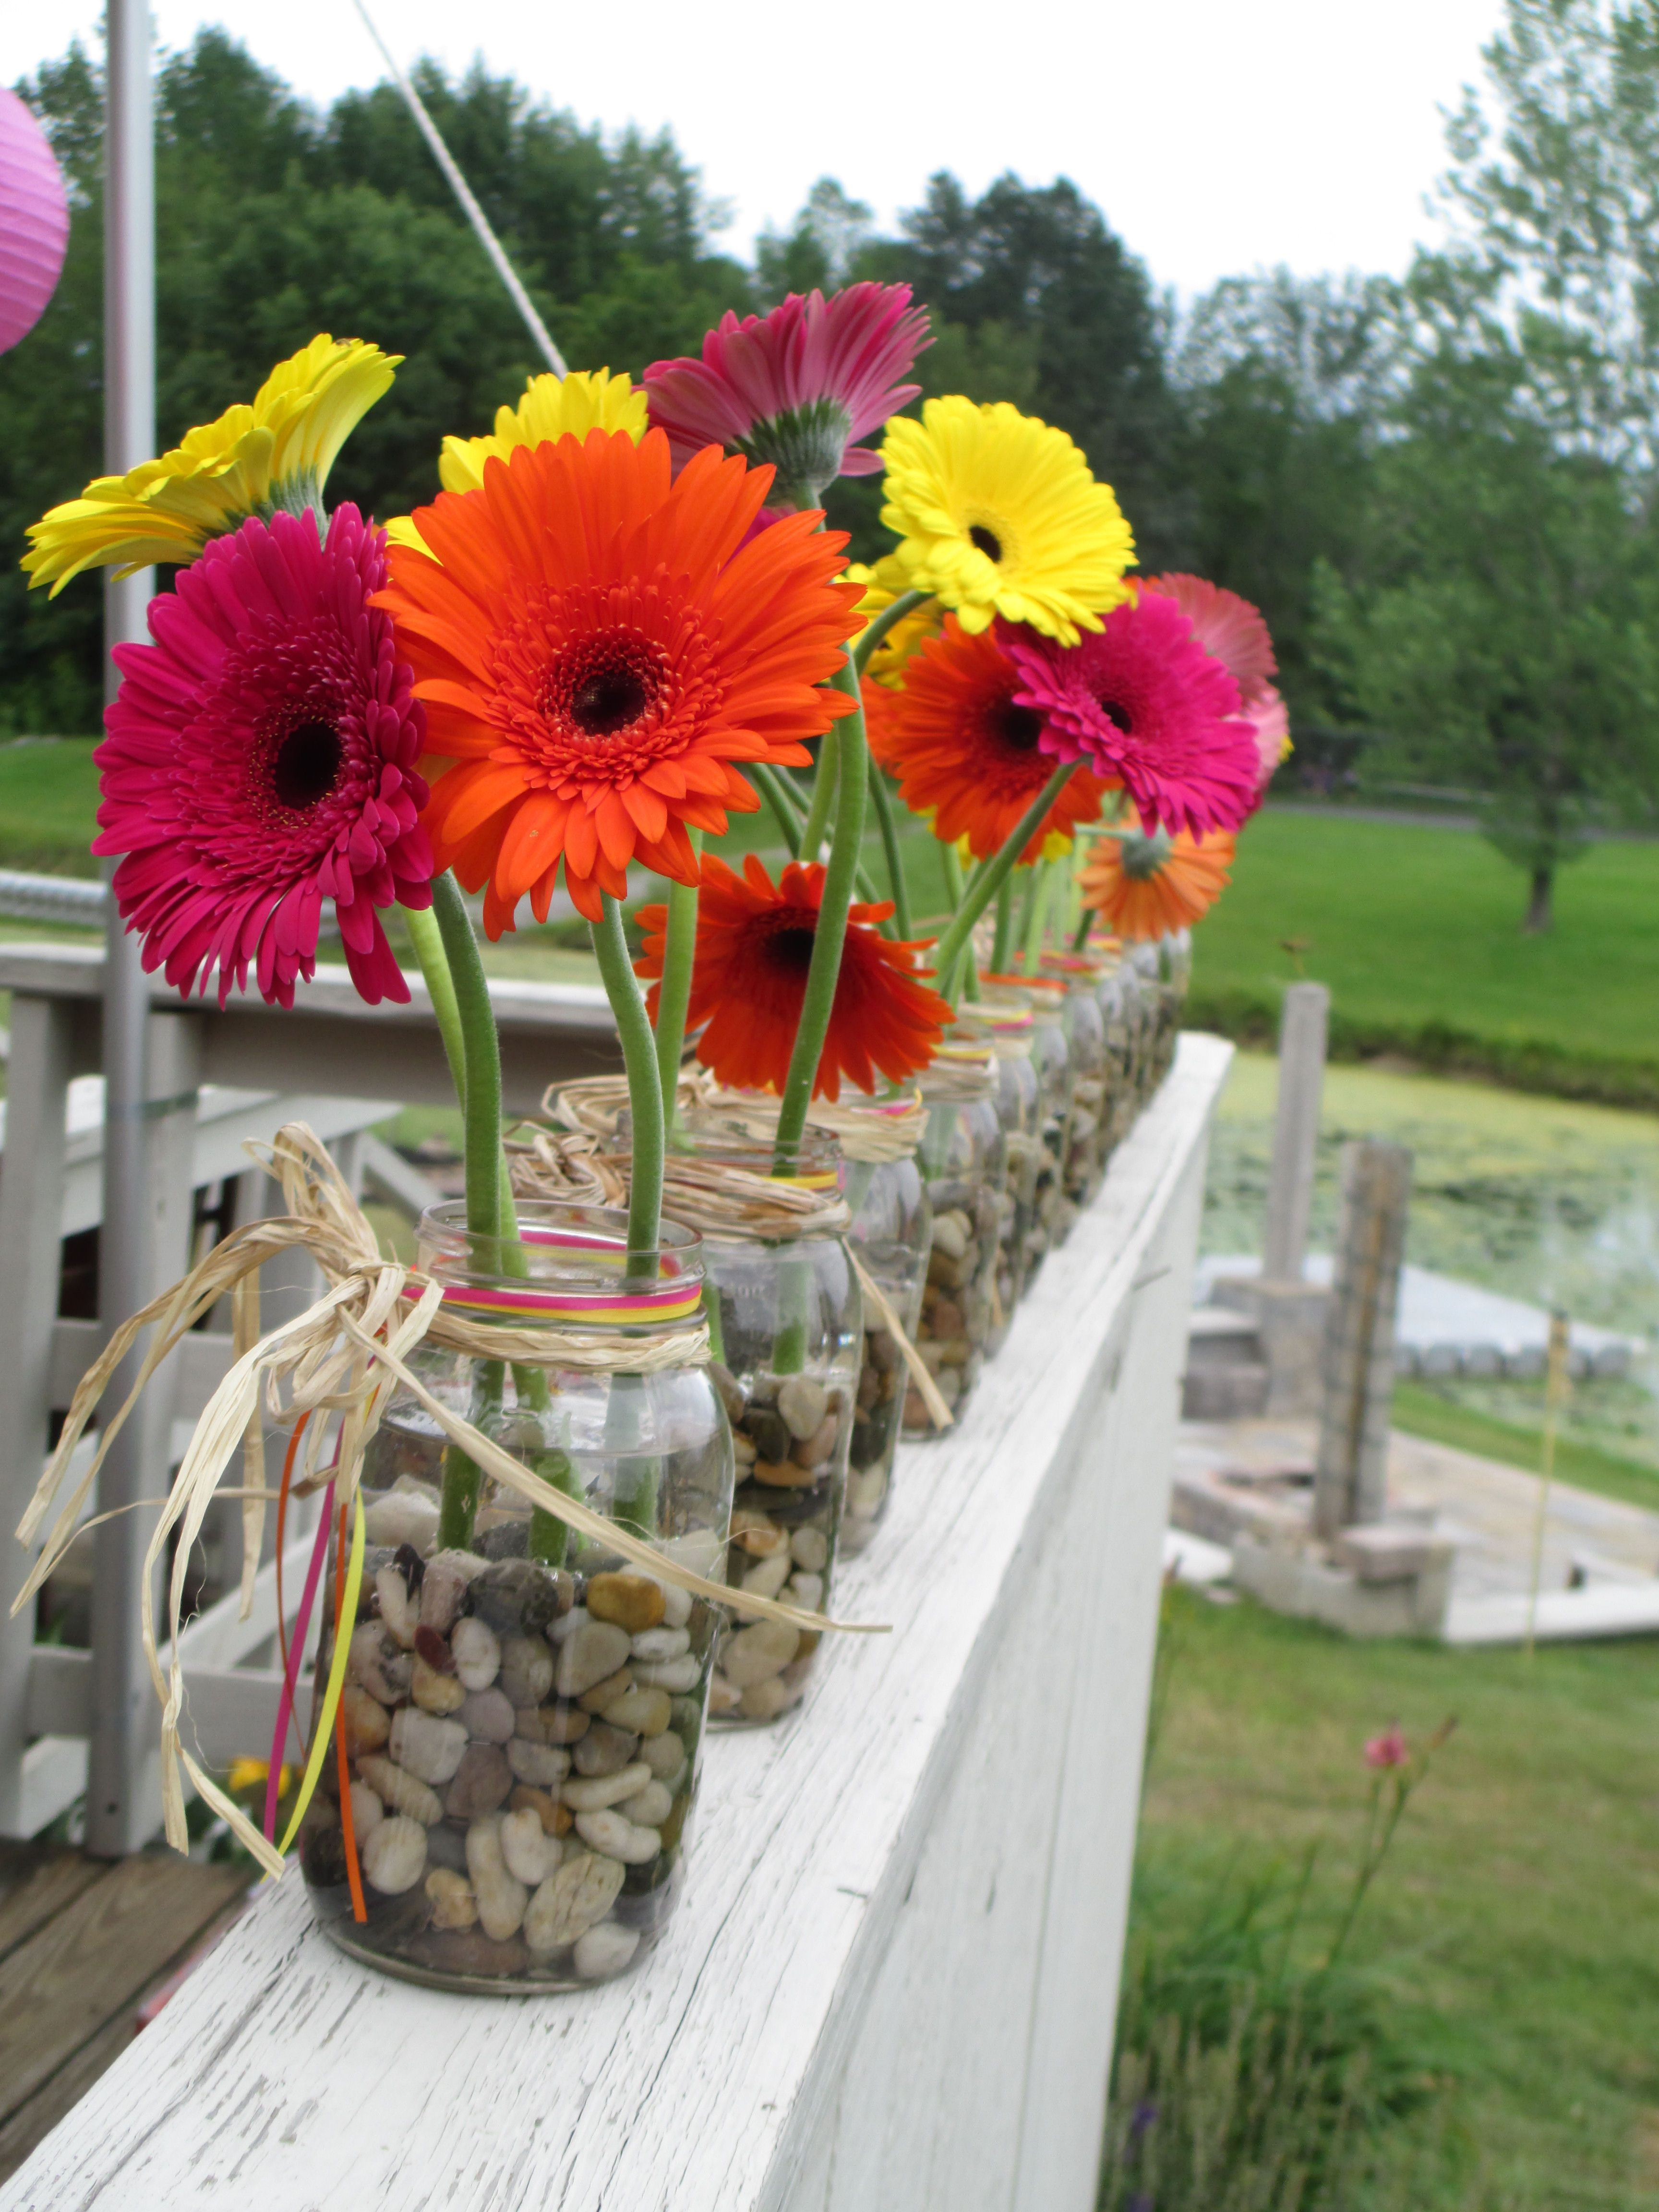 Gorgeous Gerbera Daisies In A Simple Mason Jar For A Beautiful Touch To My Party Centerpiece Flowe Flowers In Jars Wedding Table Flowers Flower Centerpieces